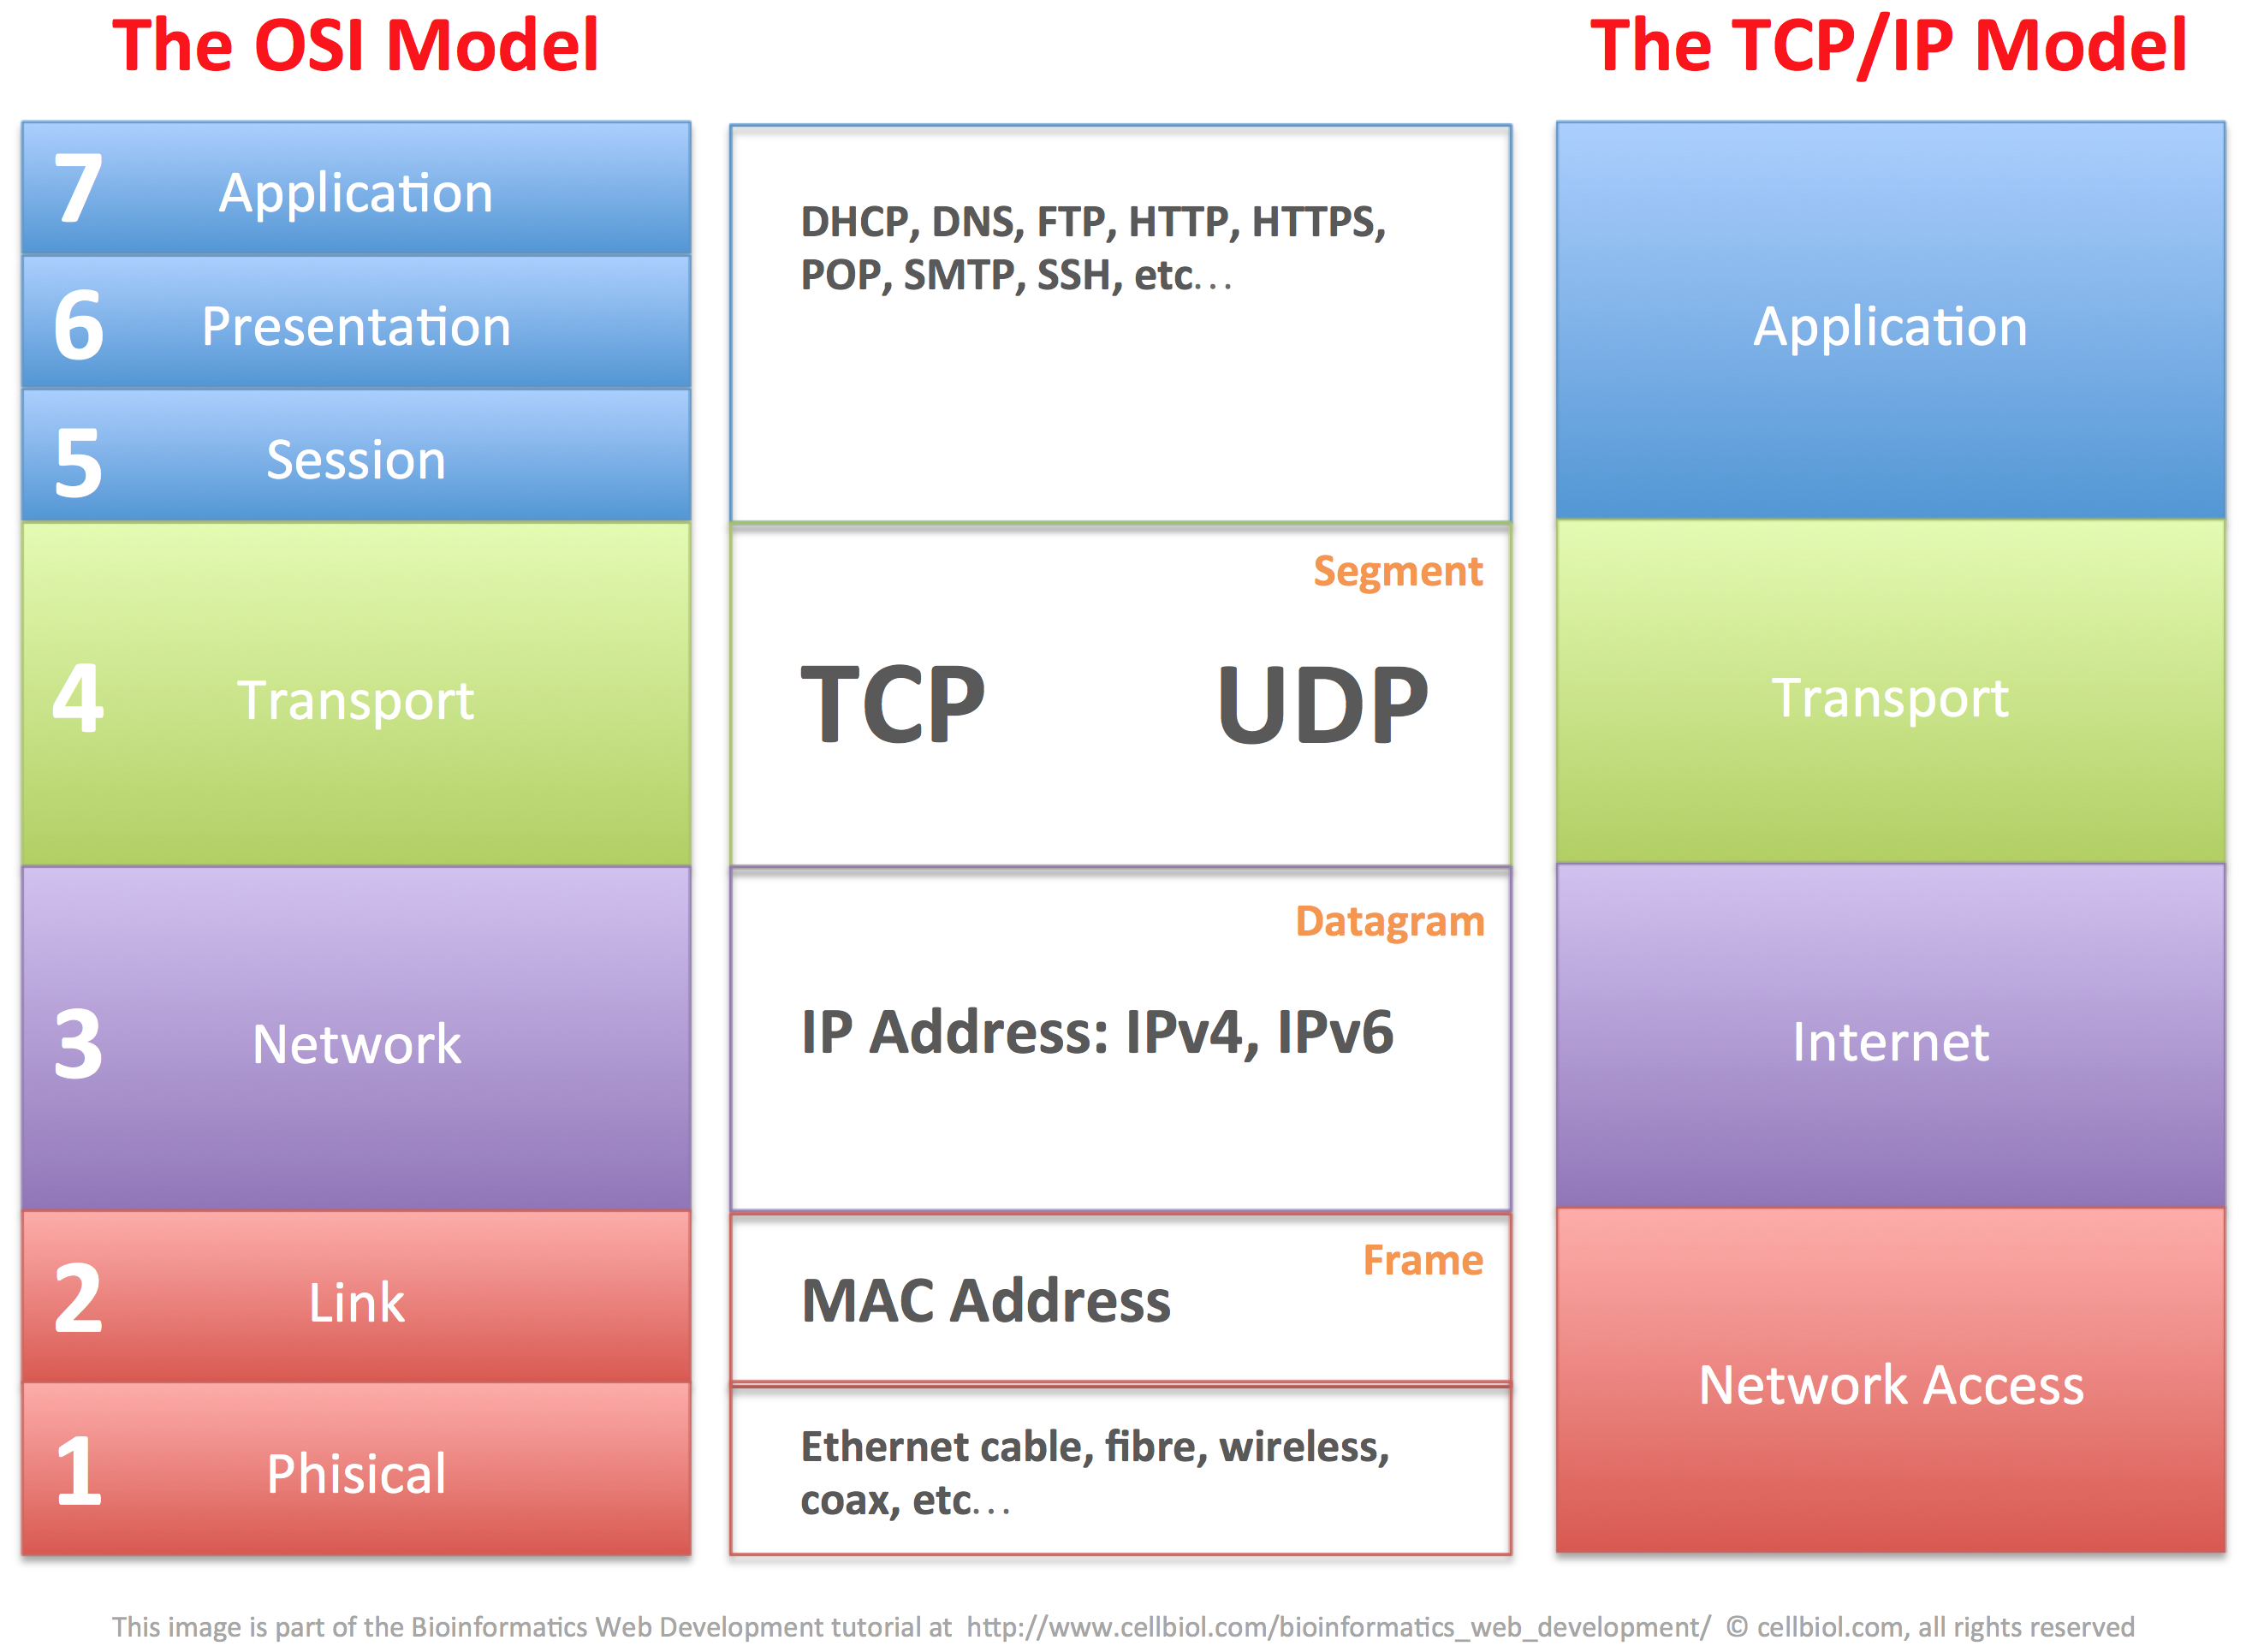 Comparison between the OSI and the TCP/IP models that show how the OSI layers relate to the TCP/IP layers.